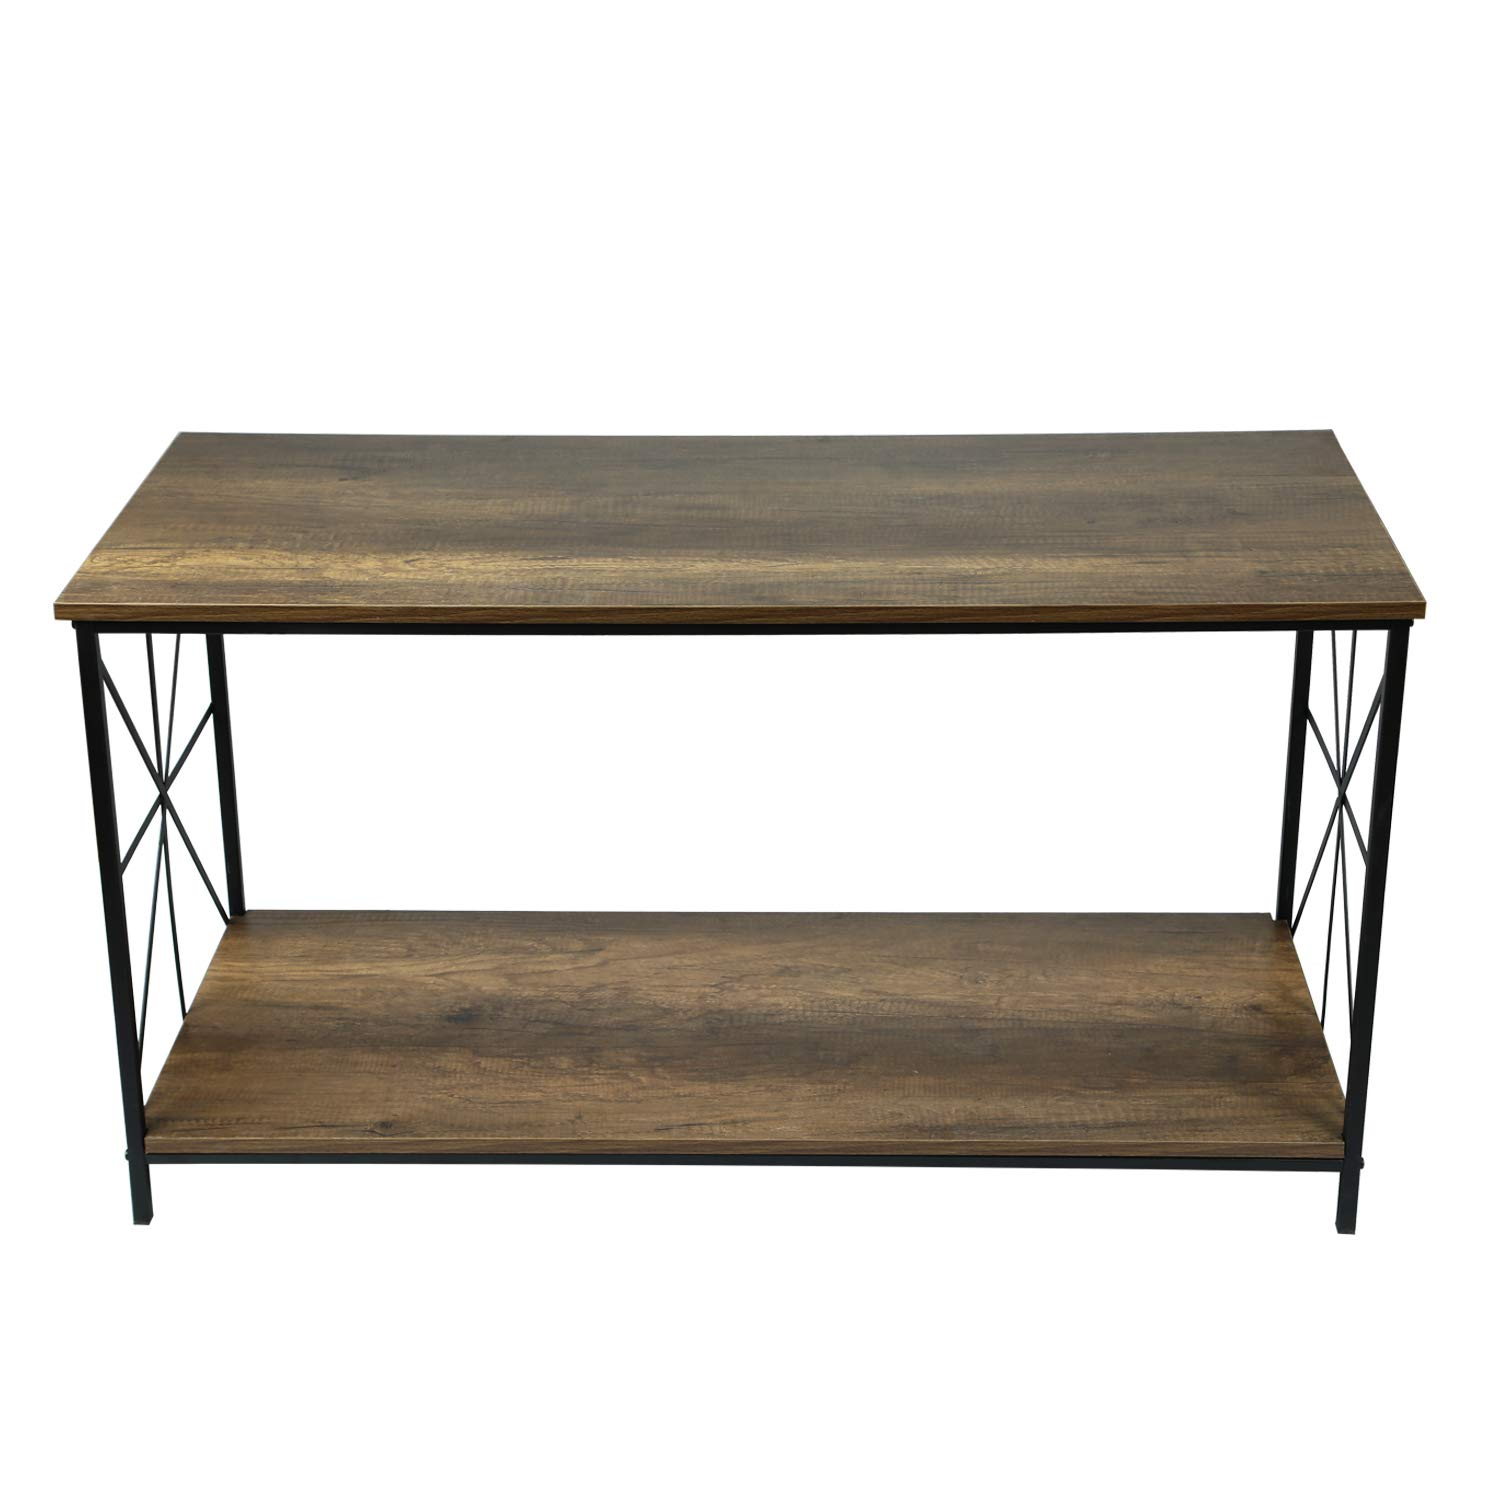 Amazon com adeco ft0198 2 accent storage wood top shelf with sturdy metal frame 24 inches height coffee tables walnut kitchen dining